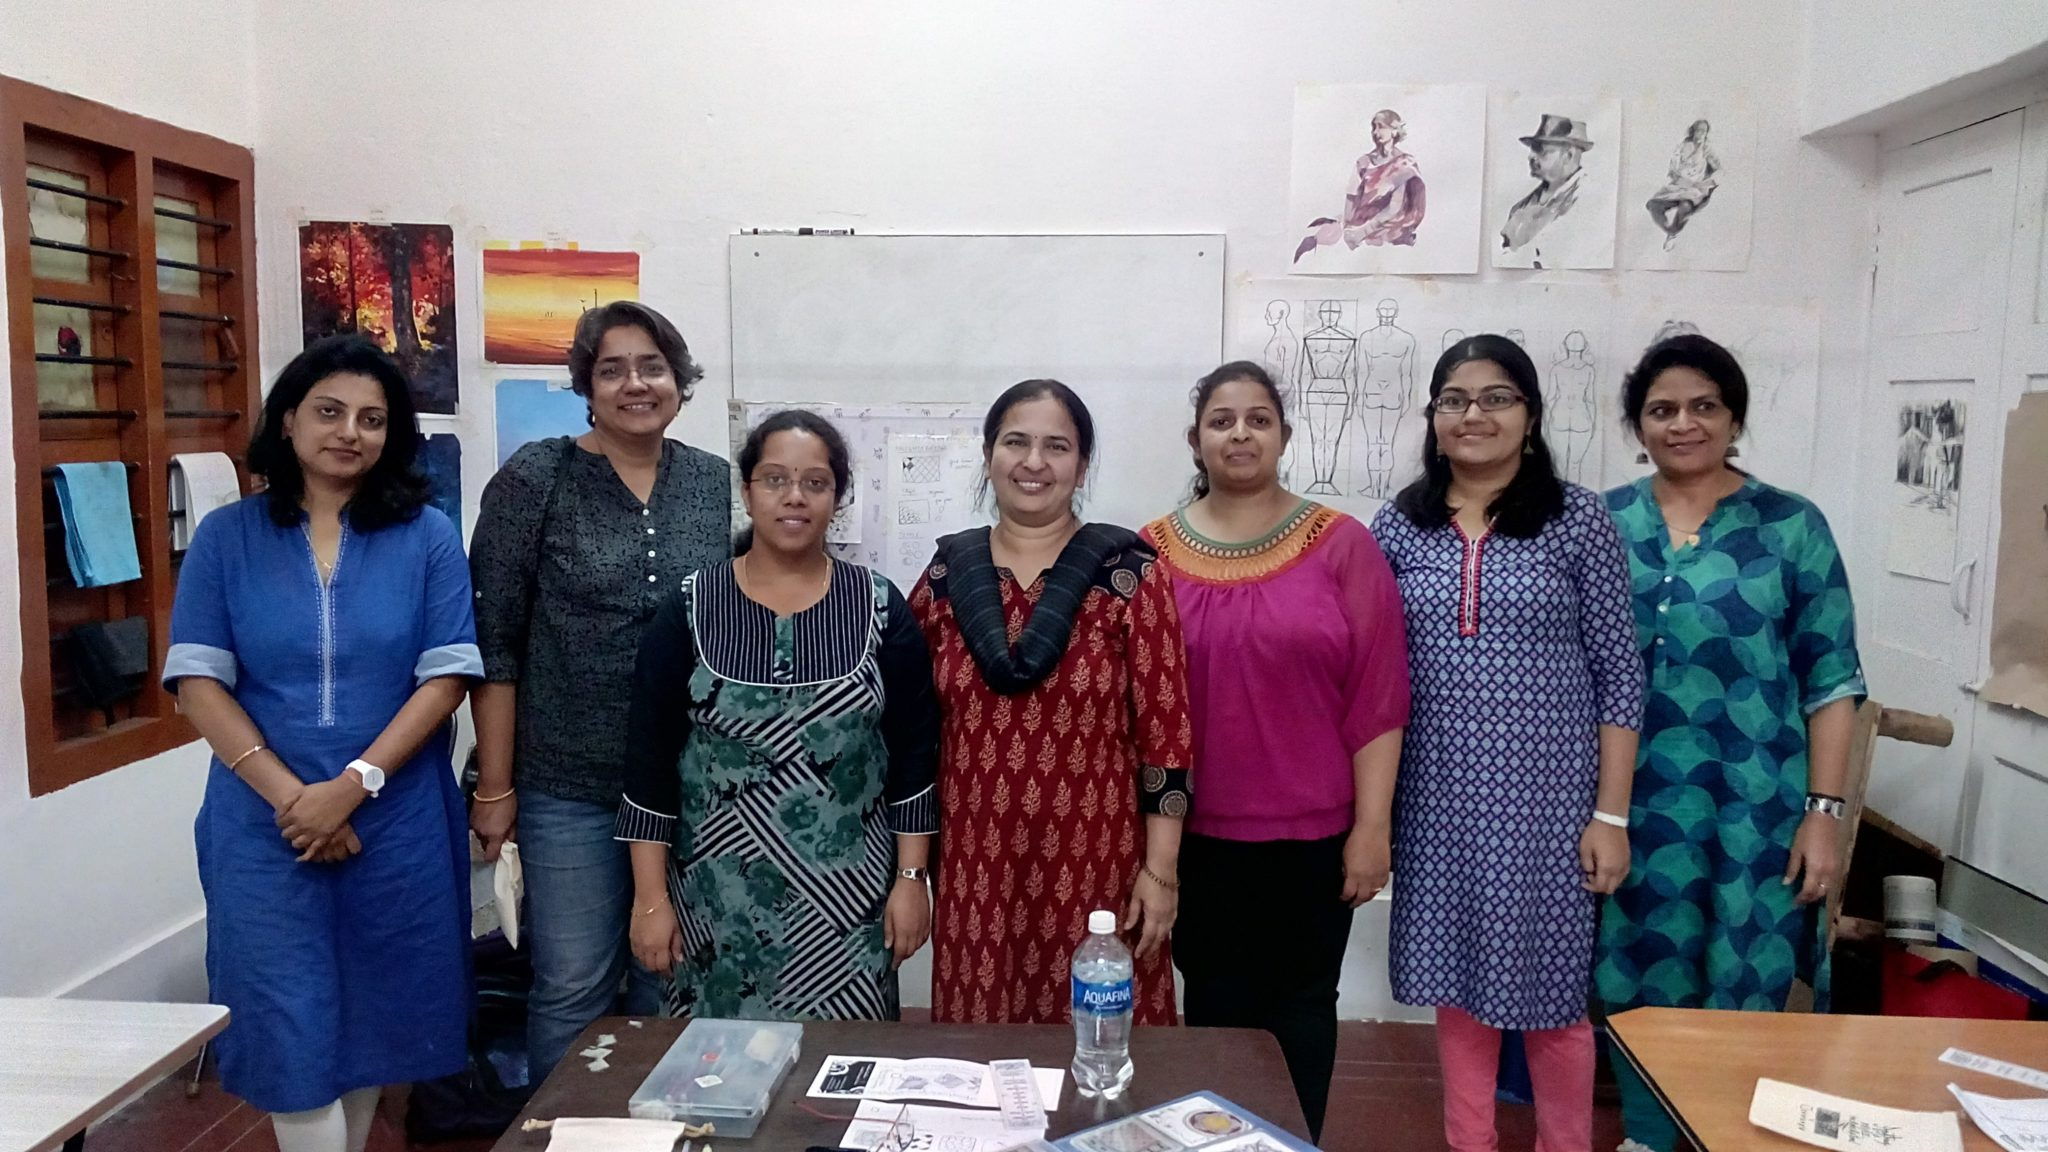 Vandana with her students